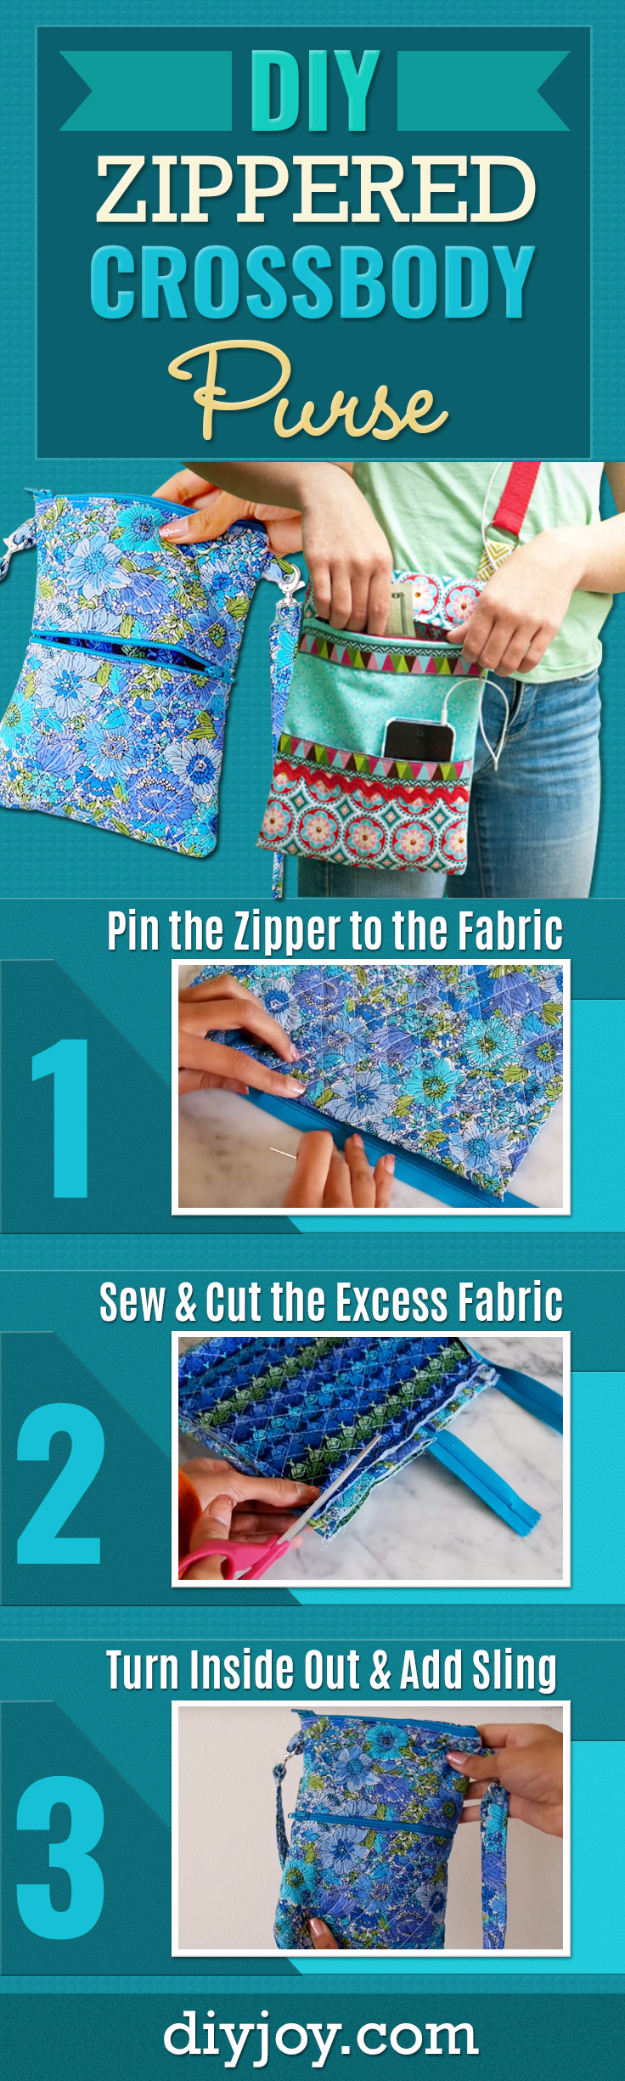 Creative DIY Projects With Zippers - Zippered Crossbody Bag - Easy Crafts and Fashion Ideas With A Zipper - Jewelry, Home Decor, School Supplies and DIY Gift Ideas - Quick DIYs for Fun Weekend Projects http://diyjoy.com/diy-projects-zippers